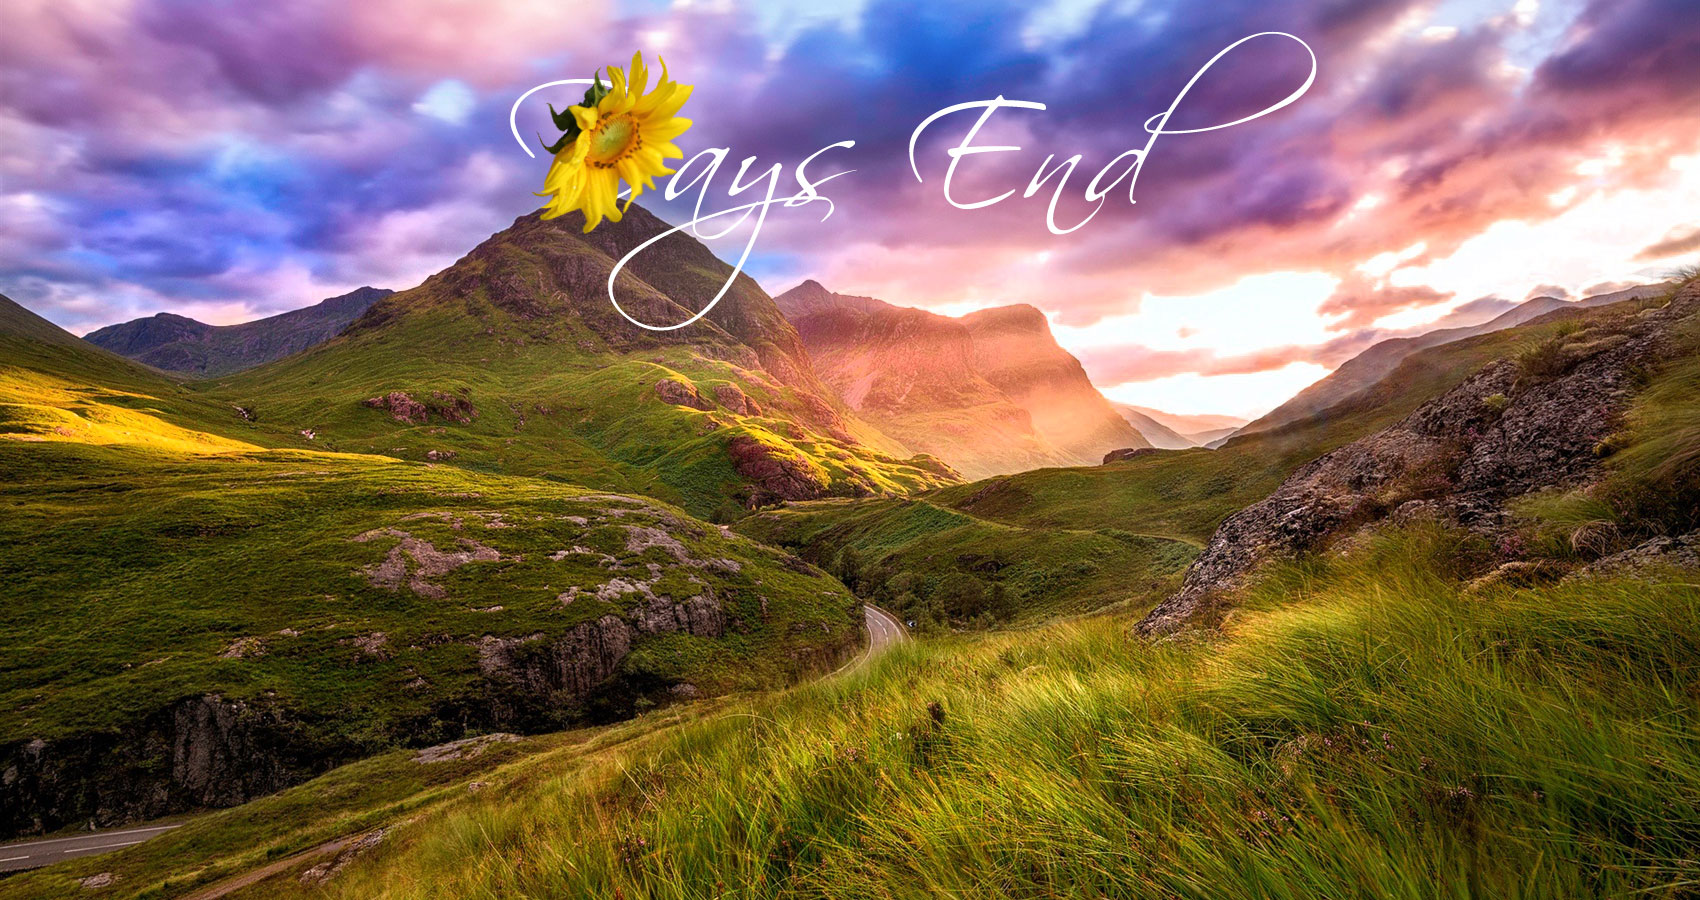 Days End by Aaron McMillan at Spillwords.com